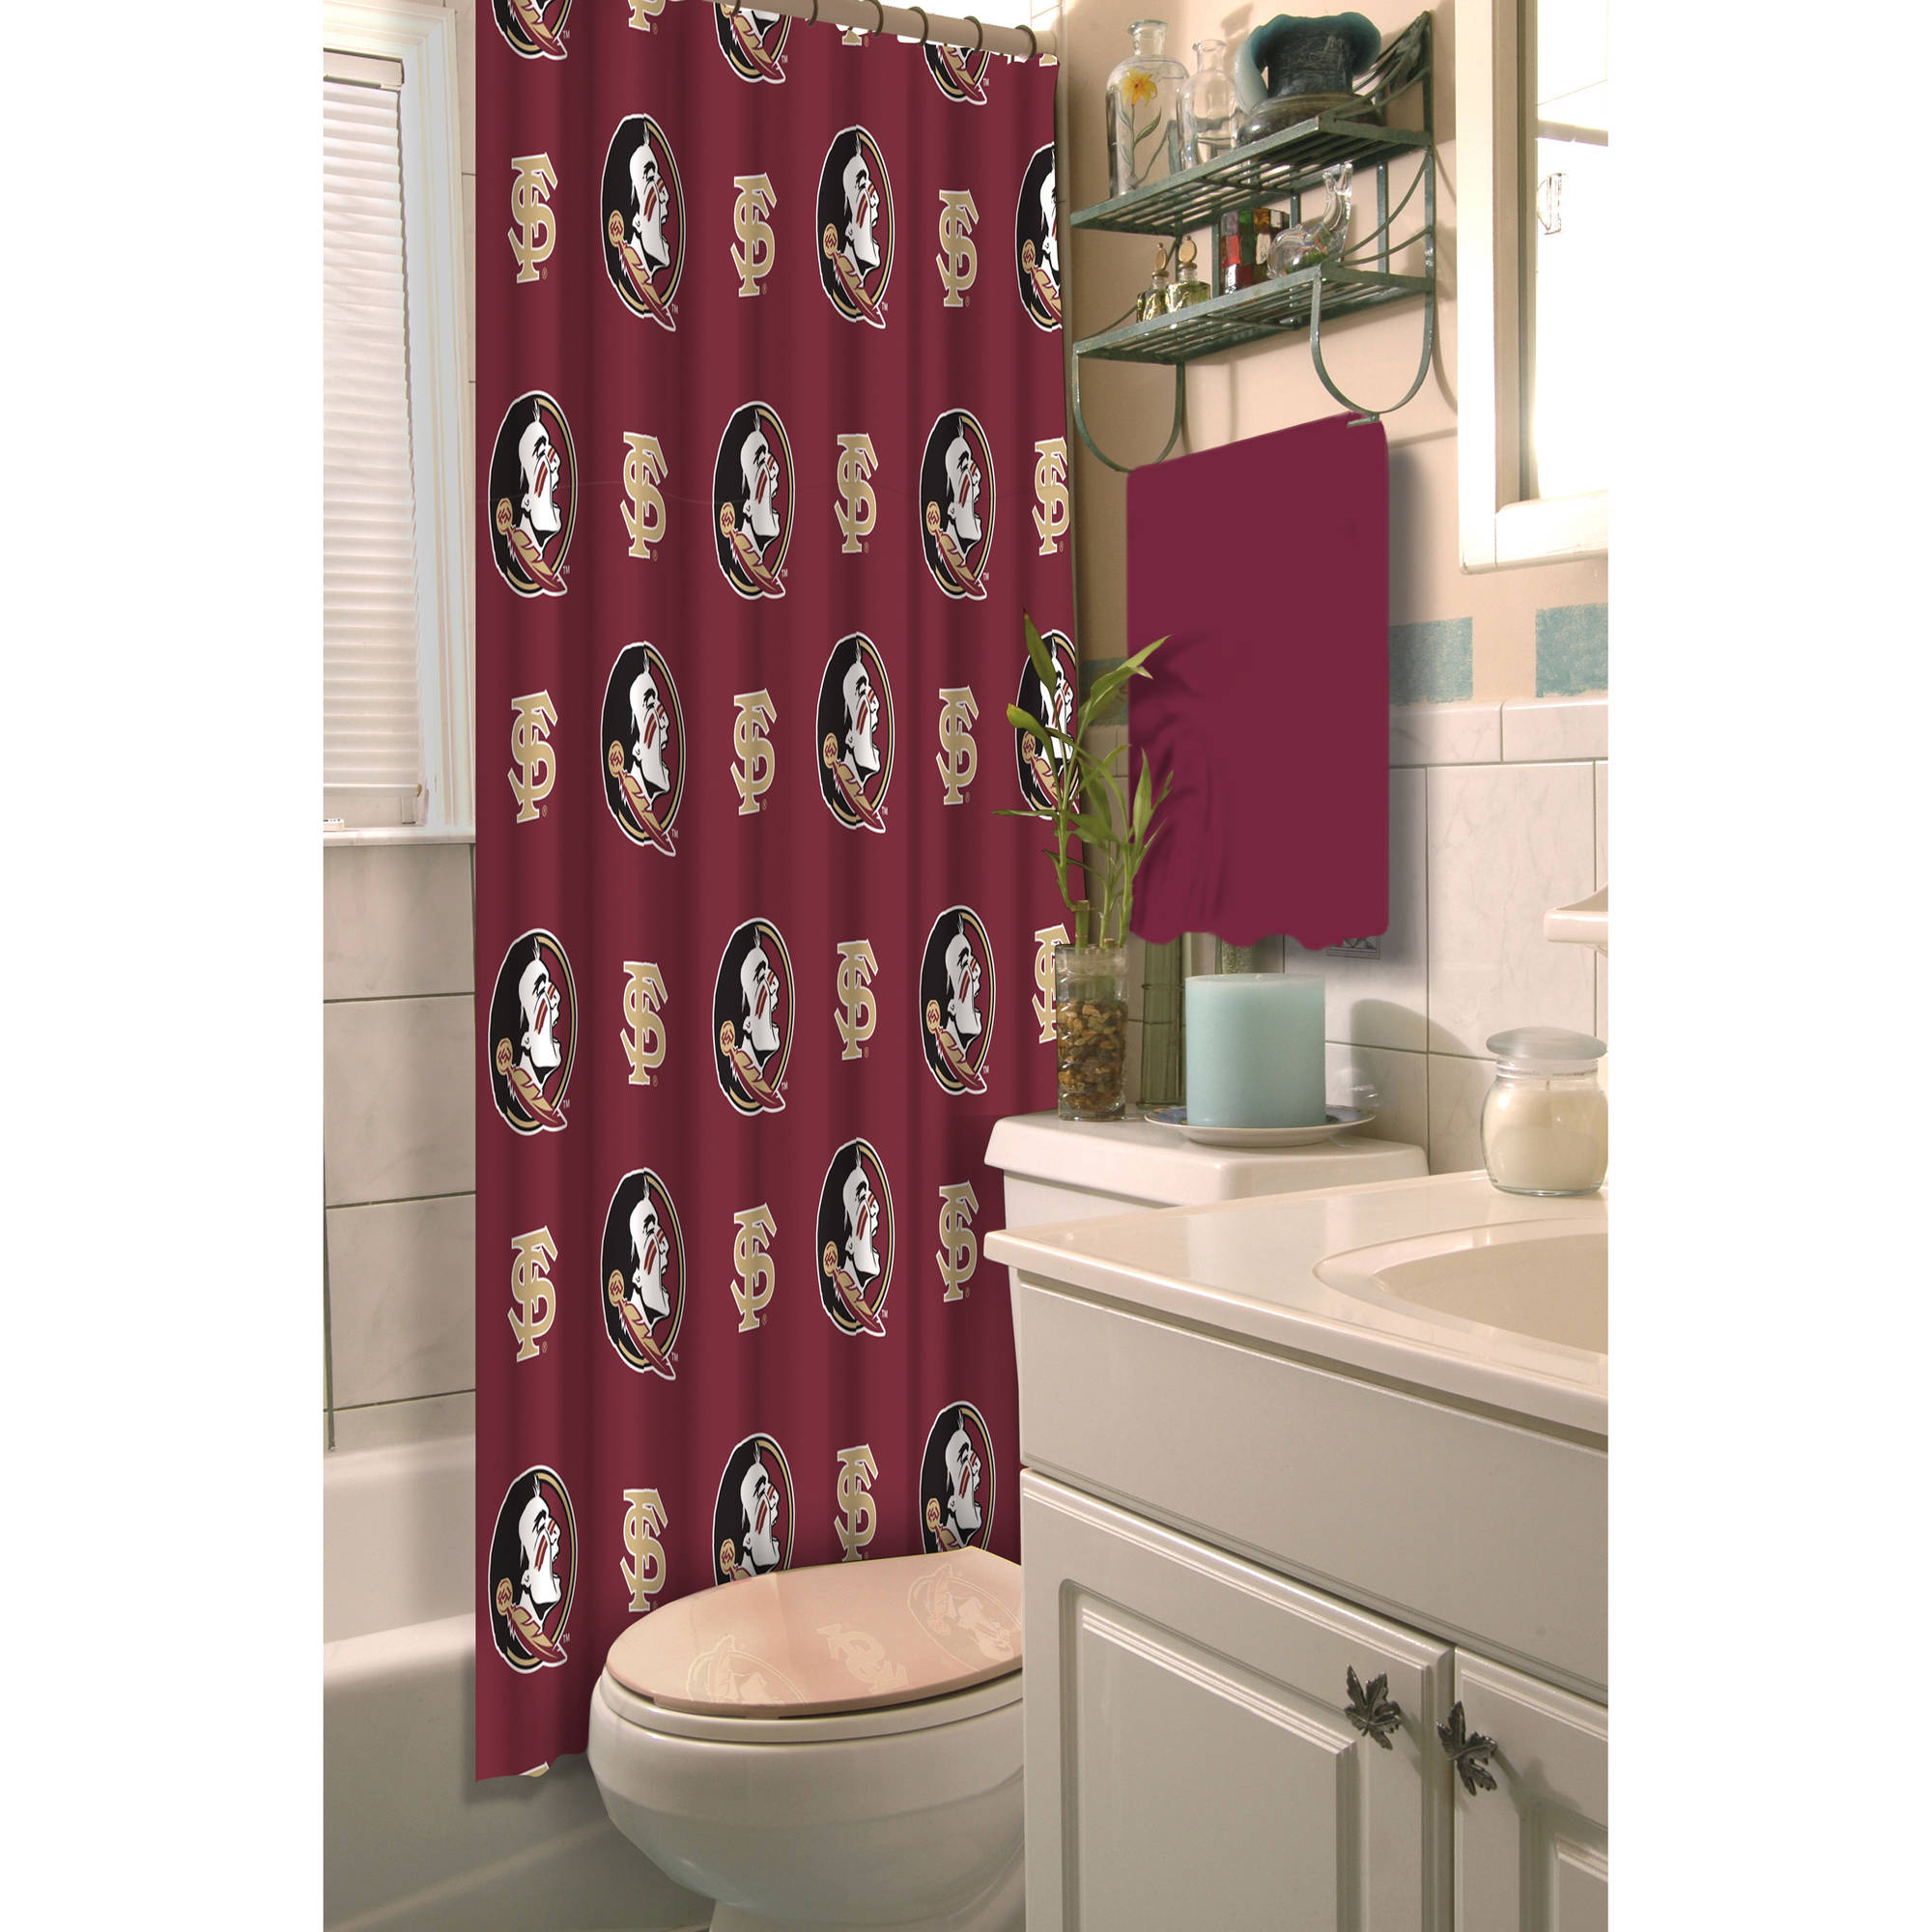 NCAA Shower Curtain, Florida State